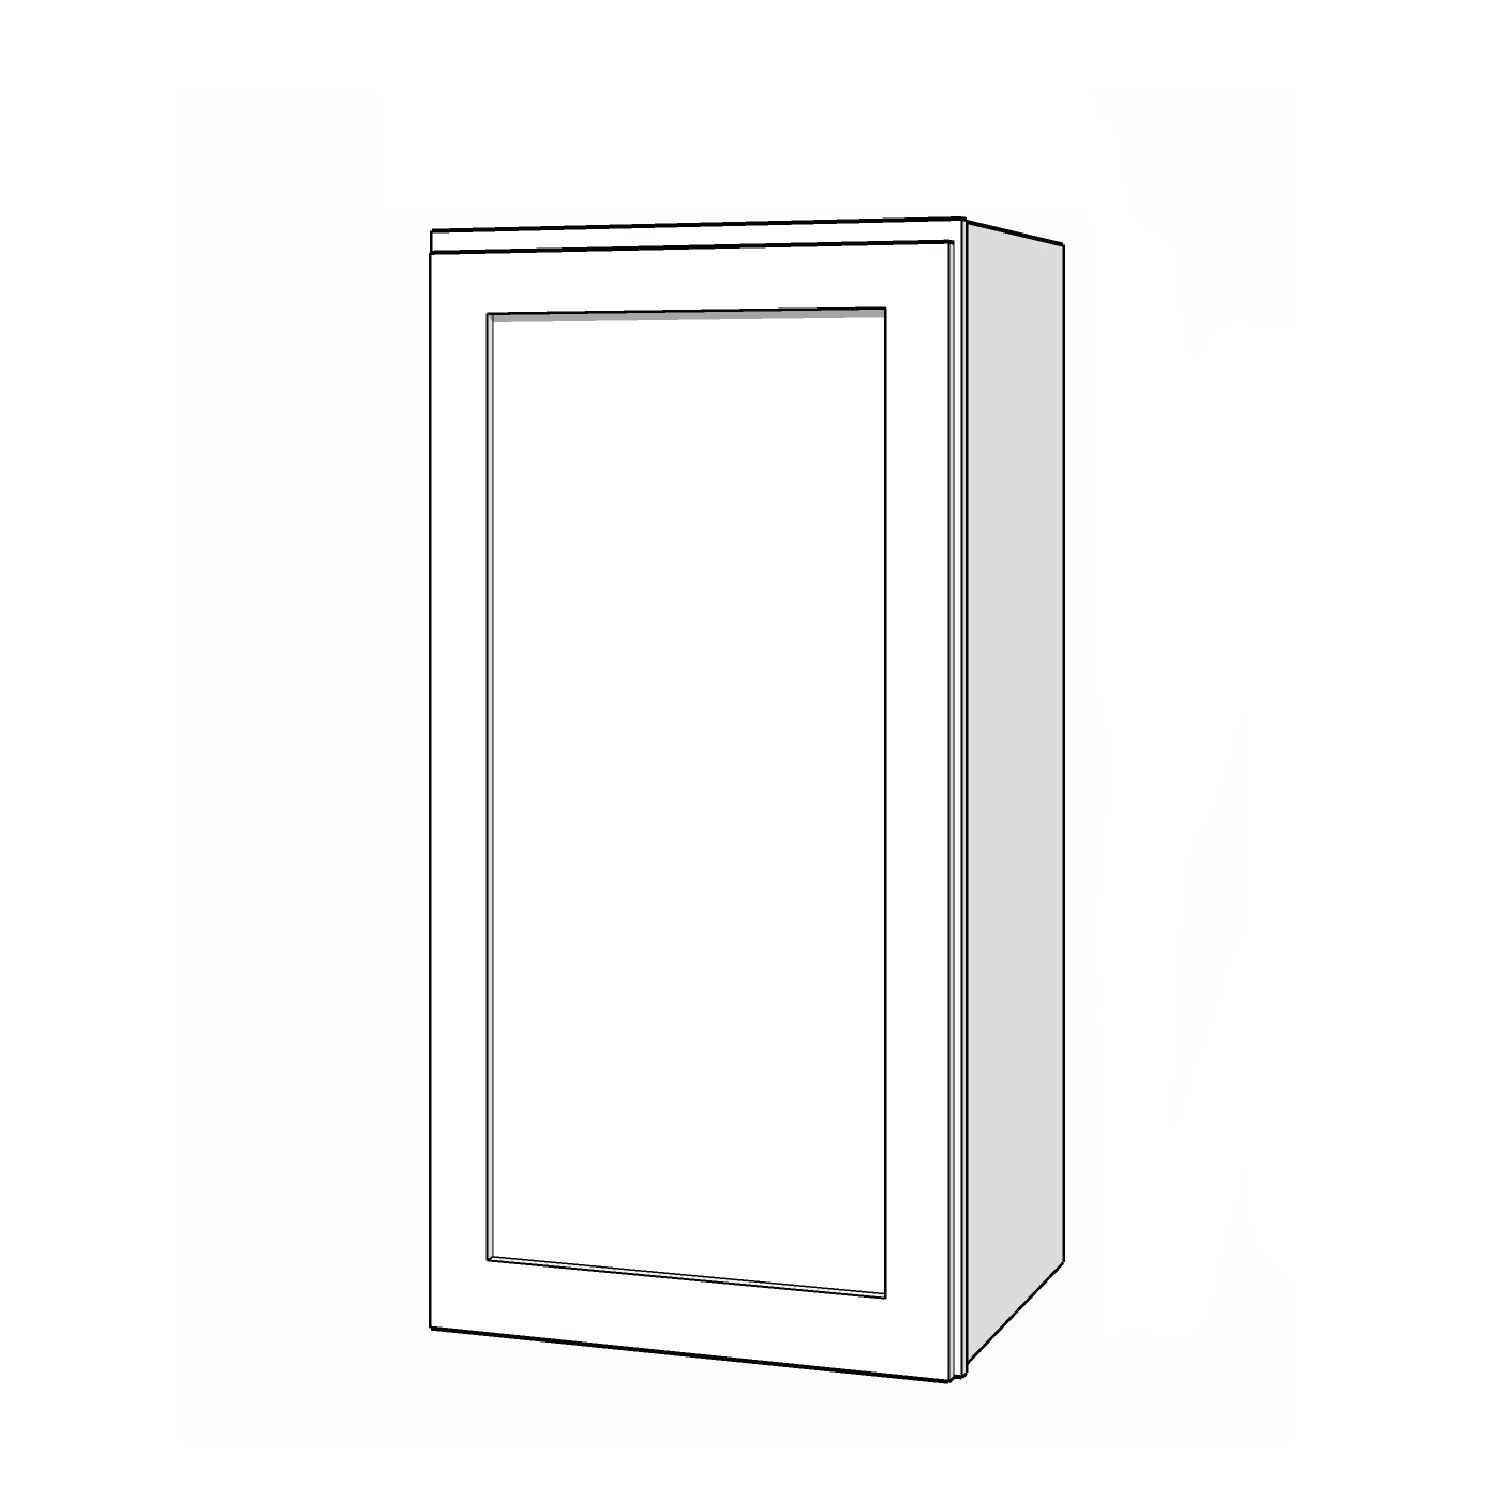 Wall Cabinet - 18in. x 36in. - White